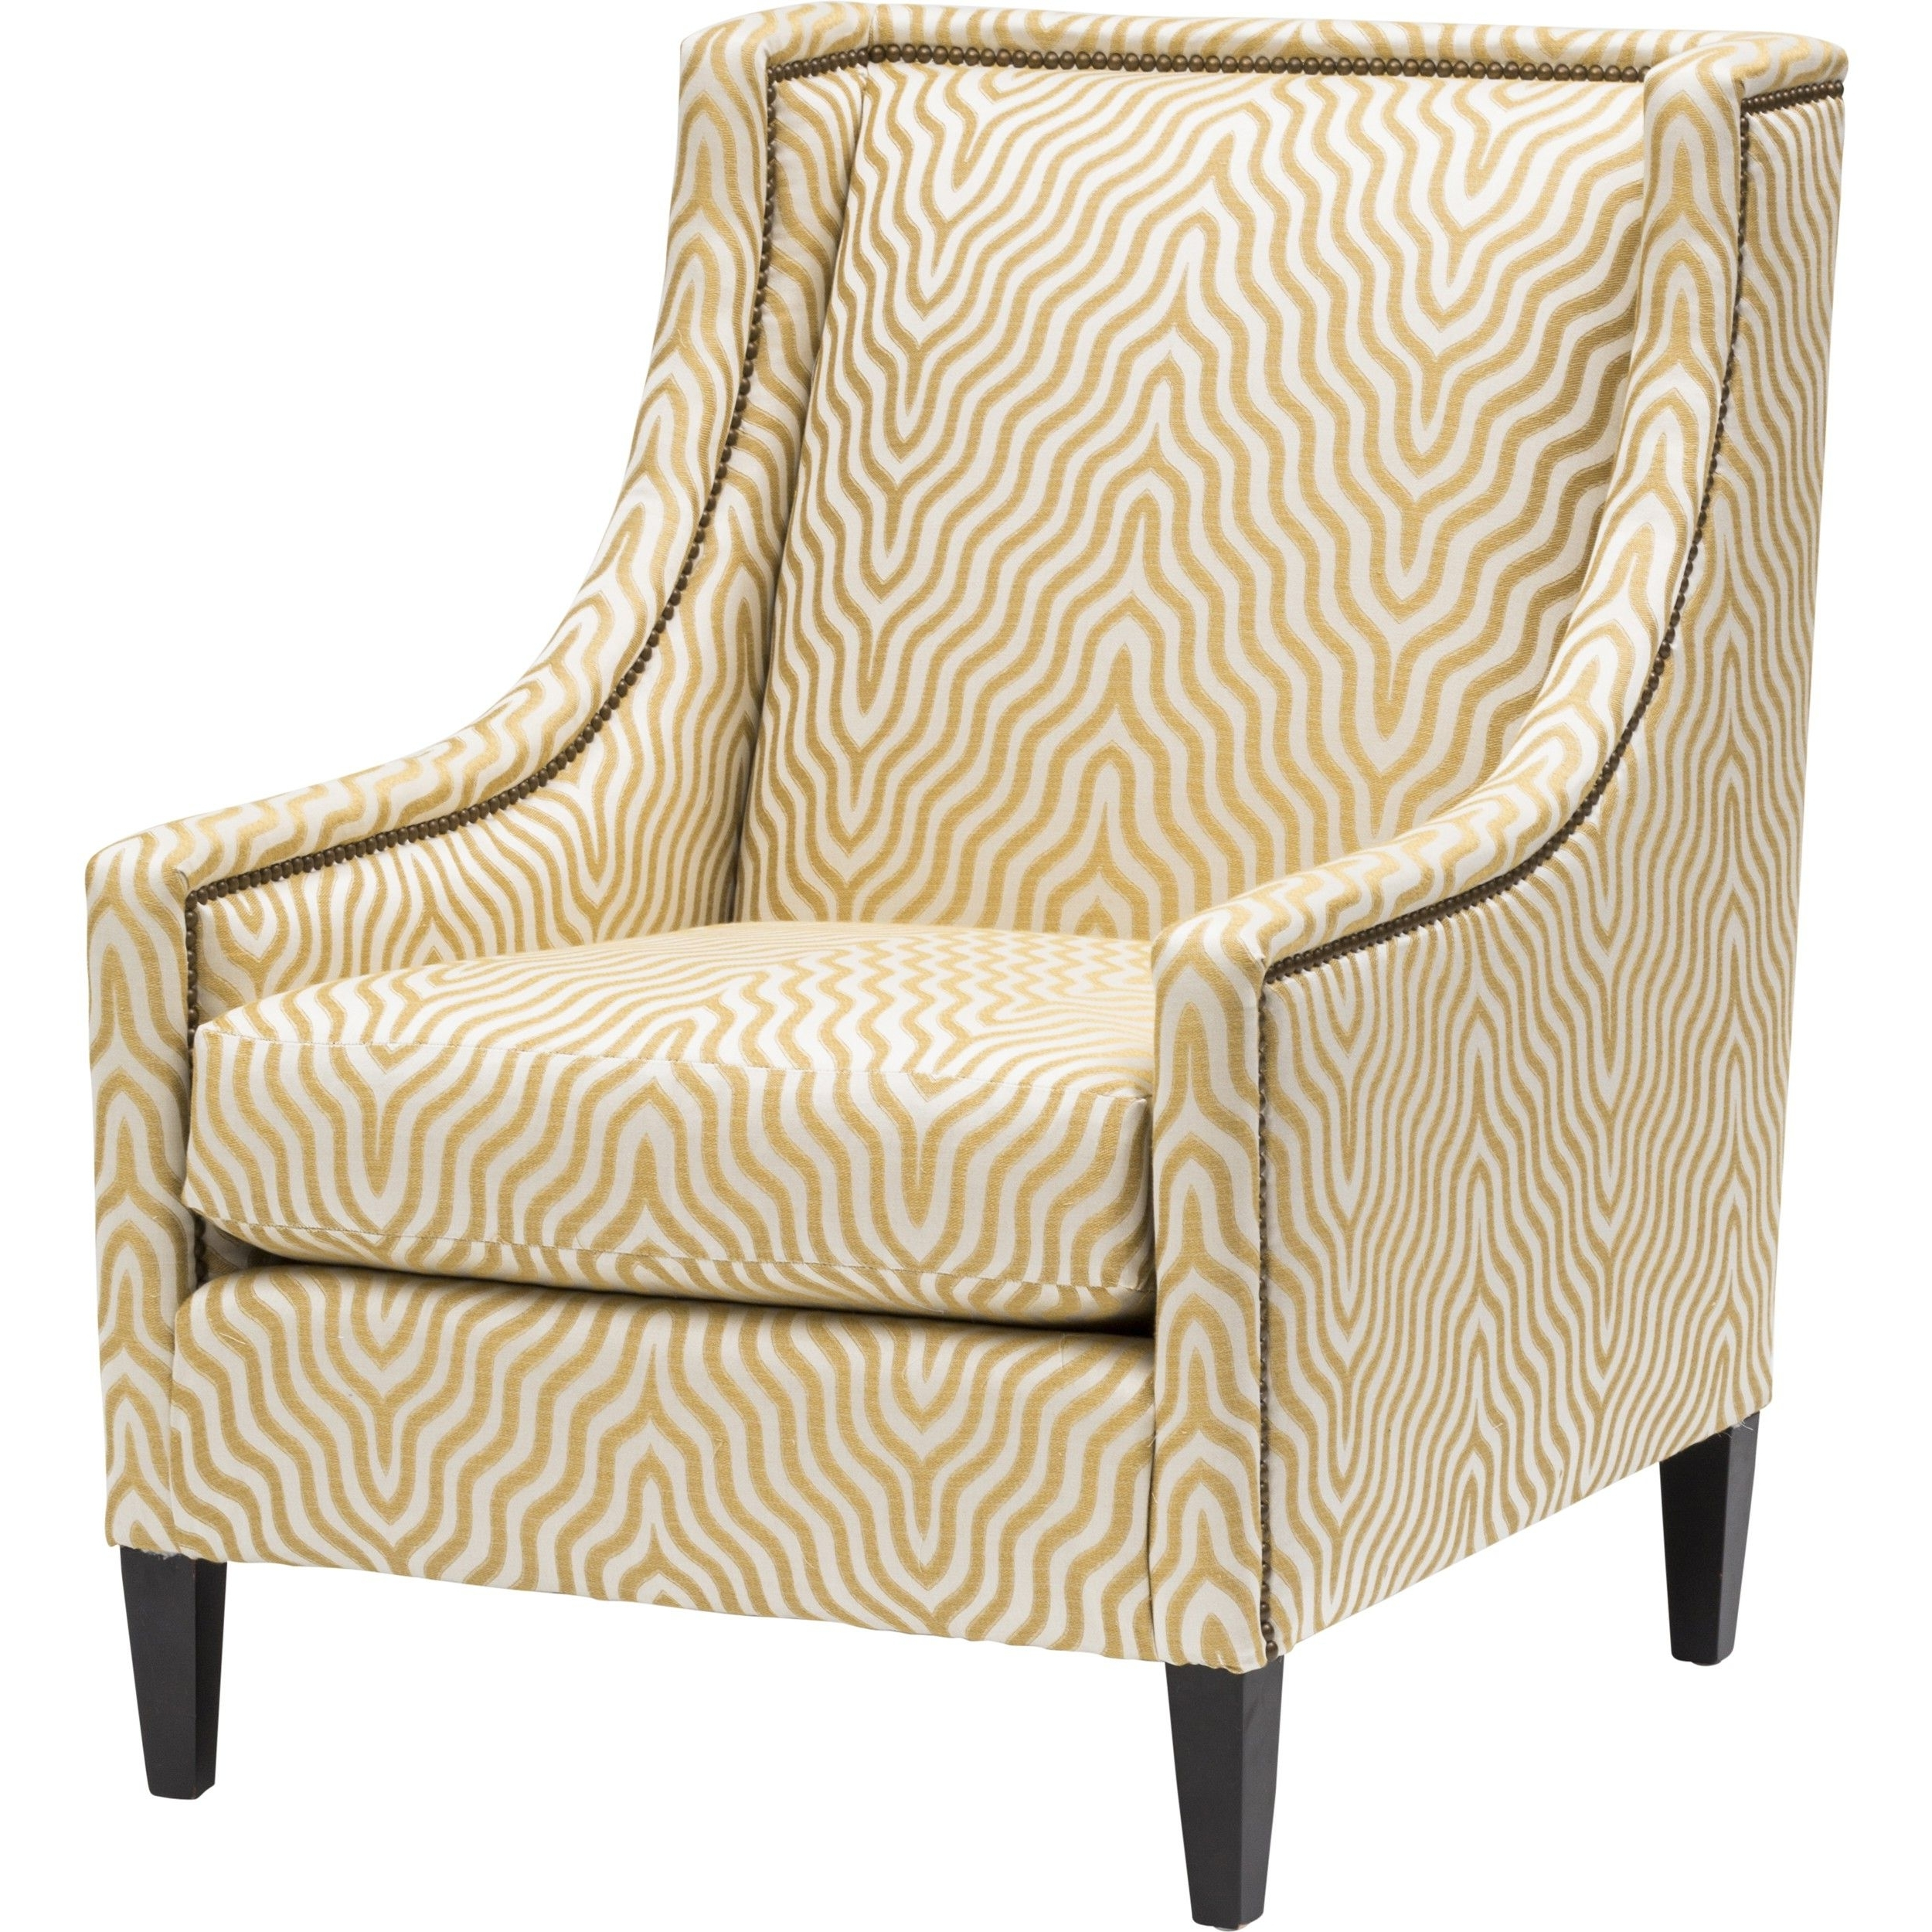 Striped Sofas And Chairs For Recent Armless, Striped Chairs (View 15 of 20)